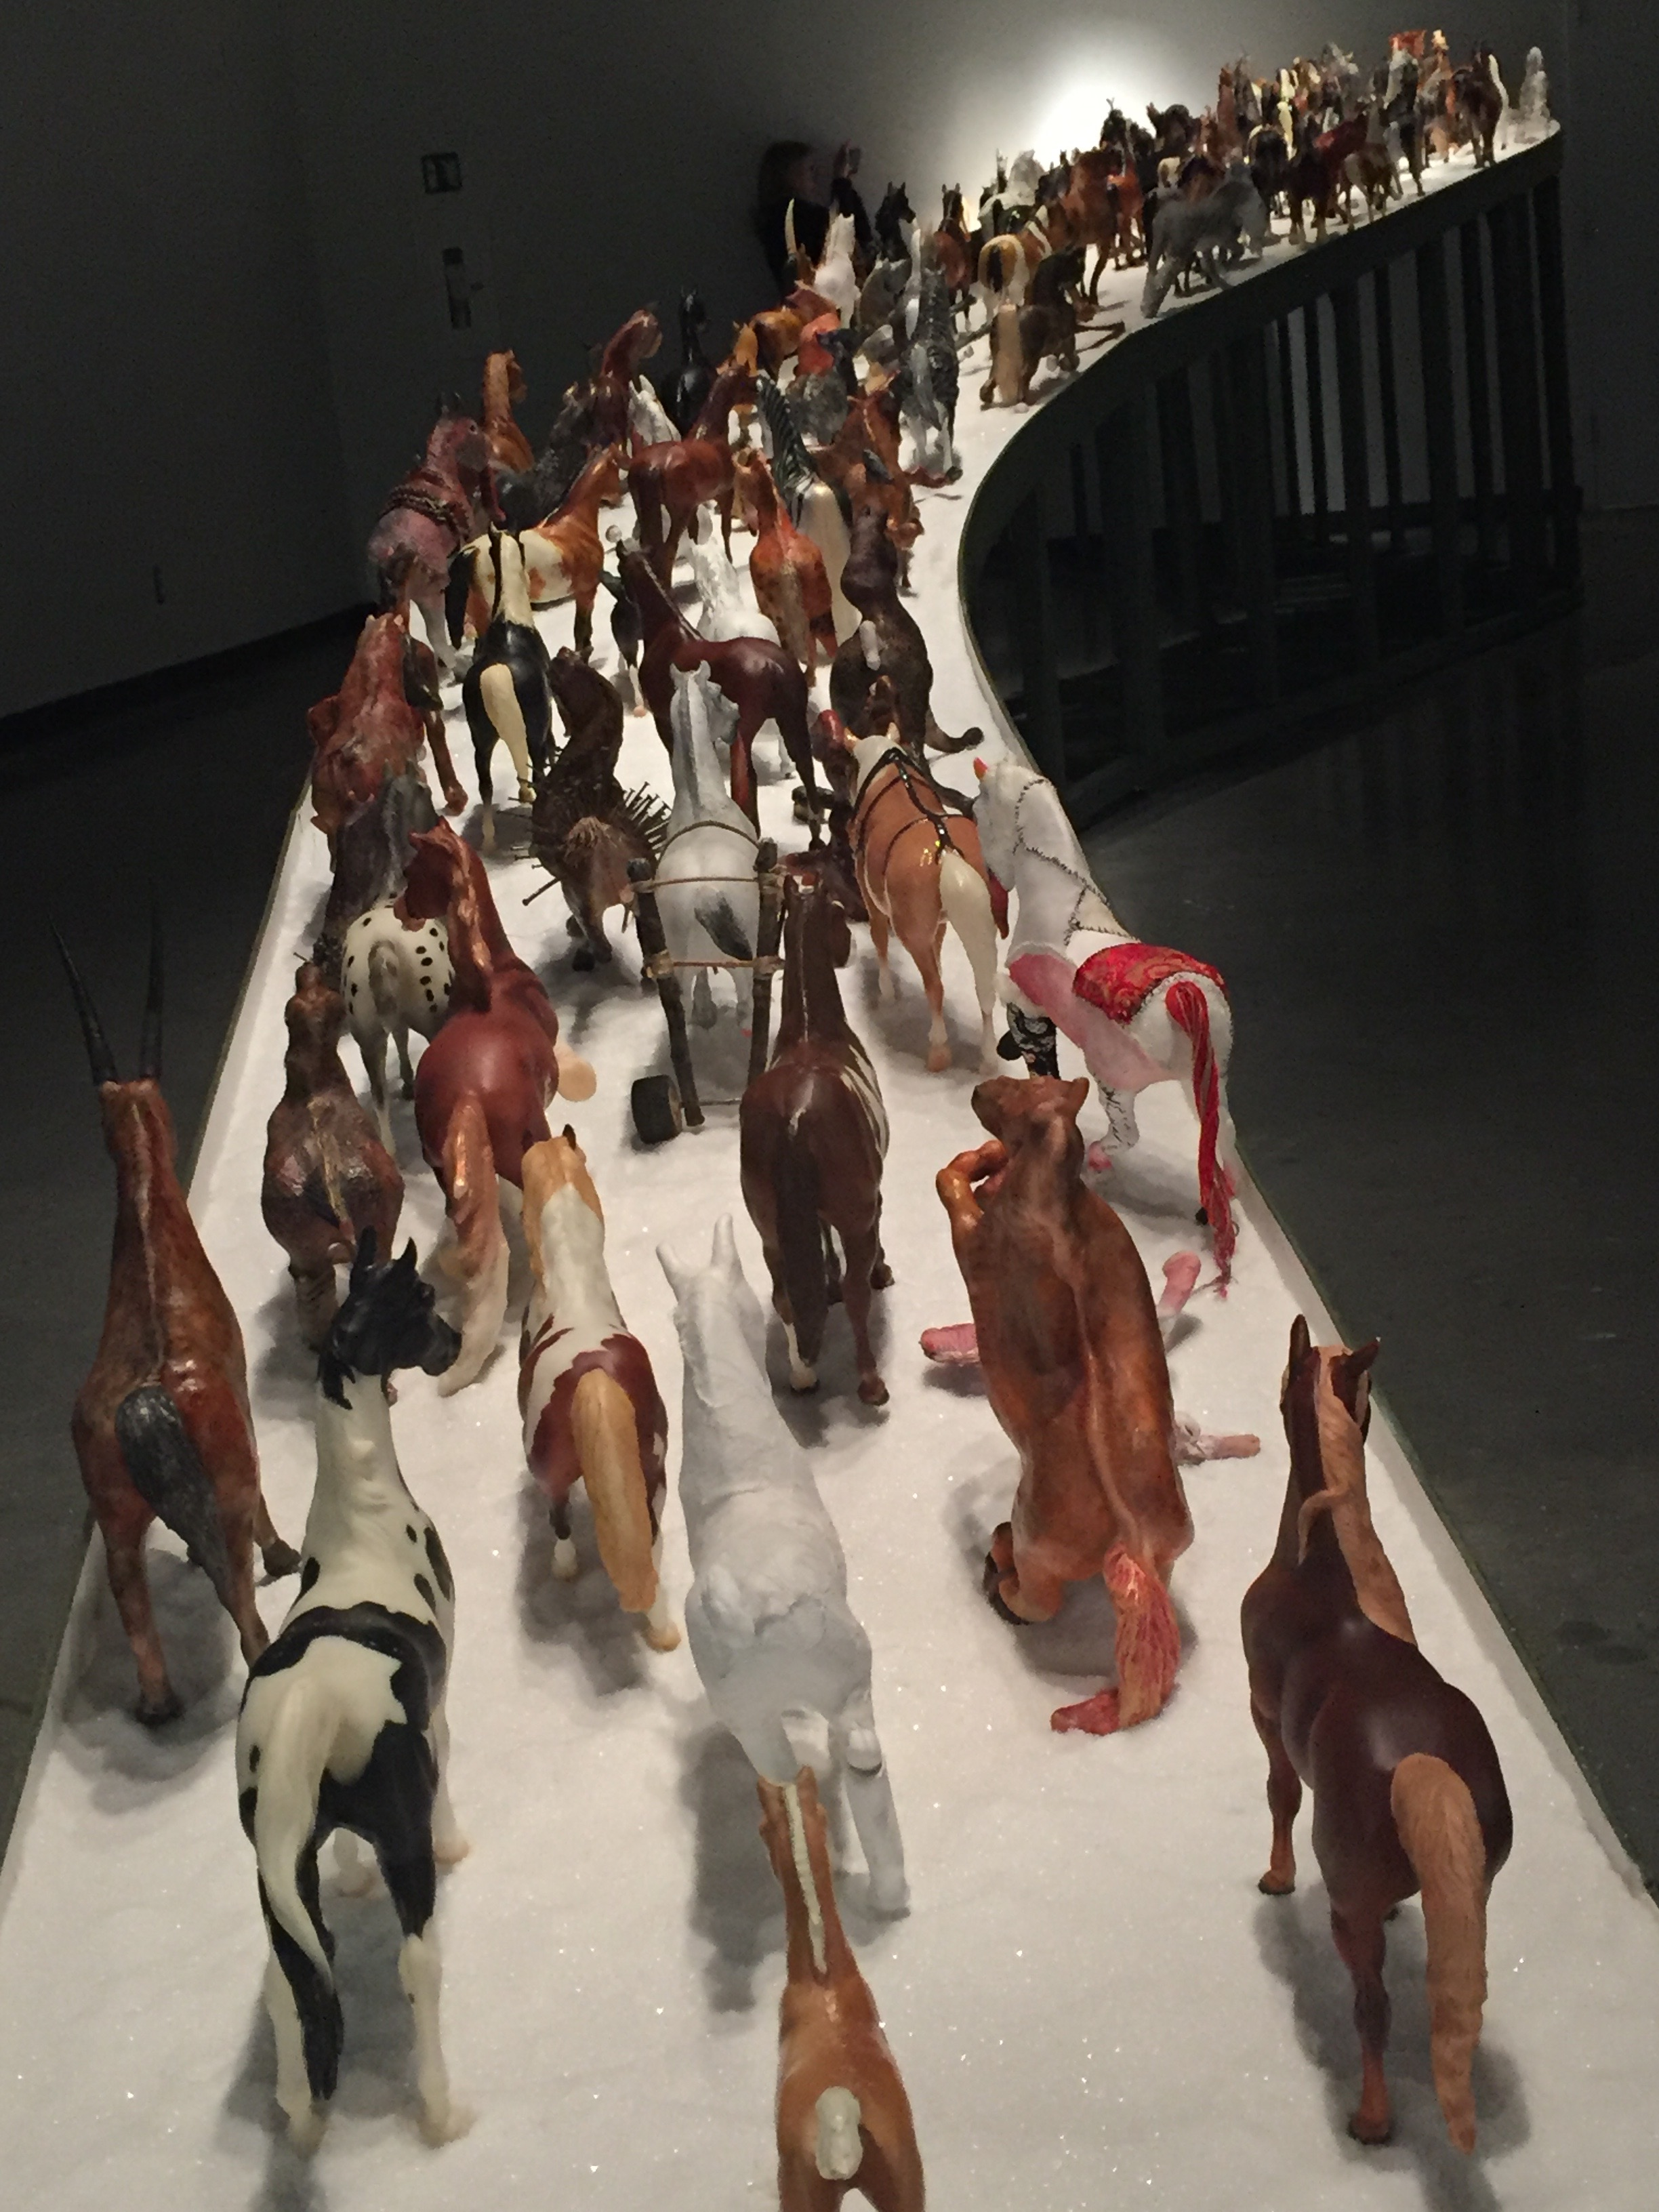 HERD Installation at OSA Gallery